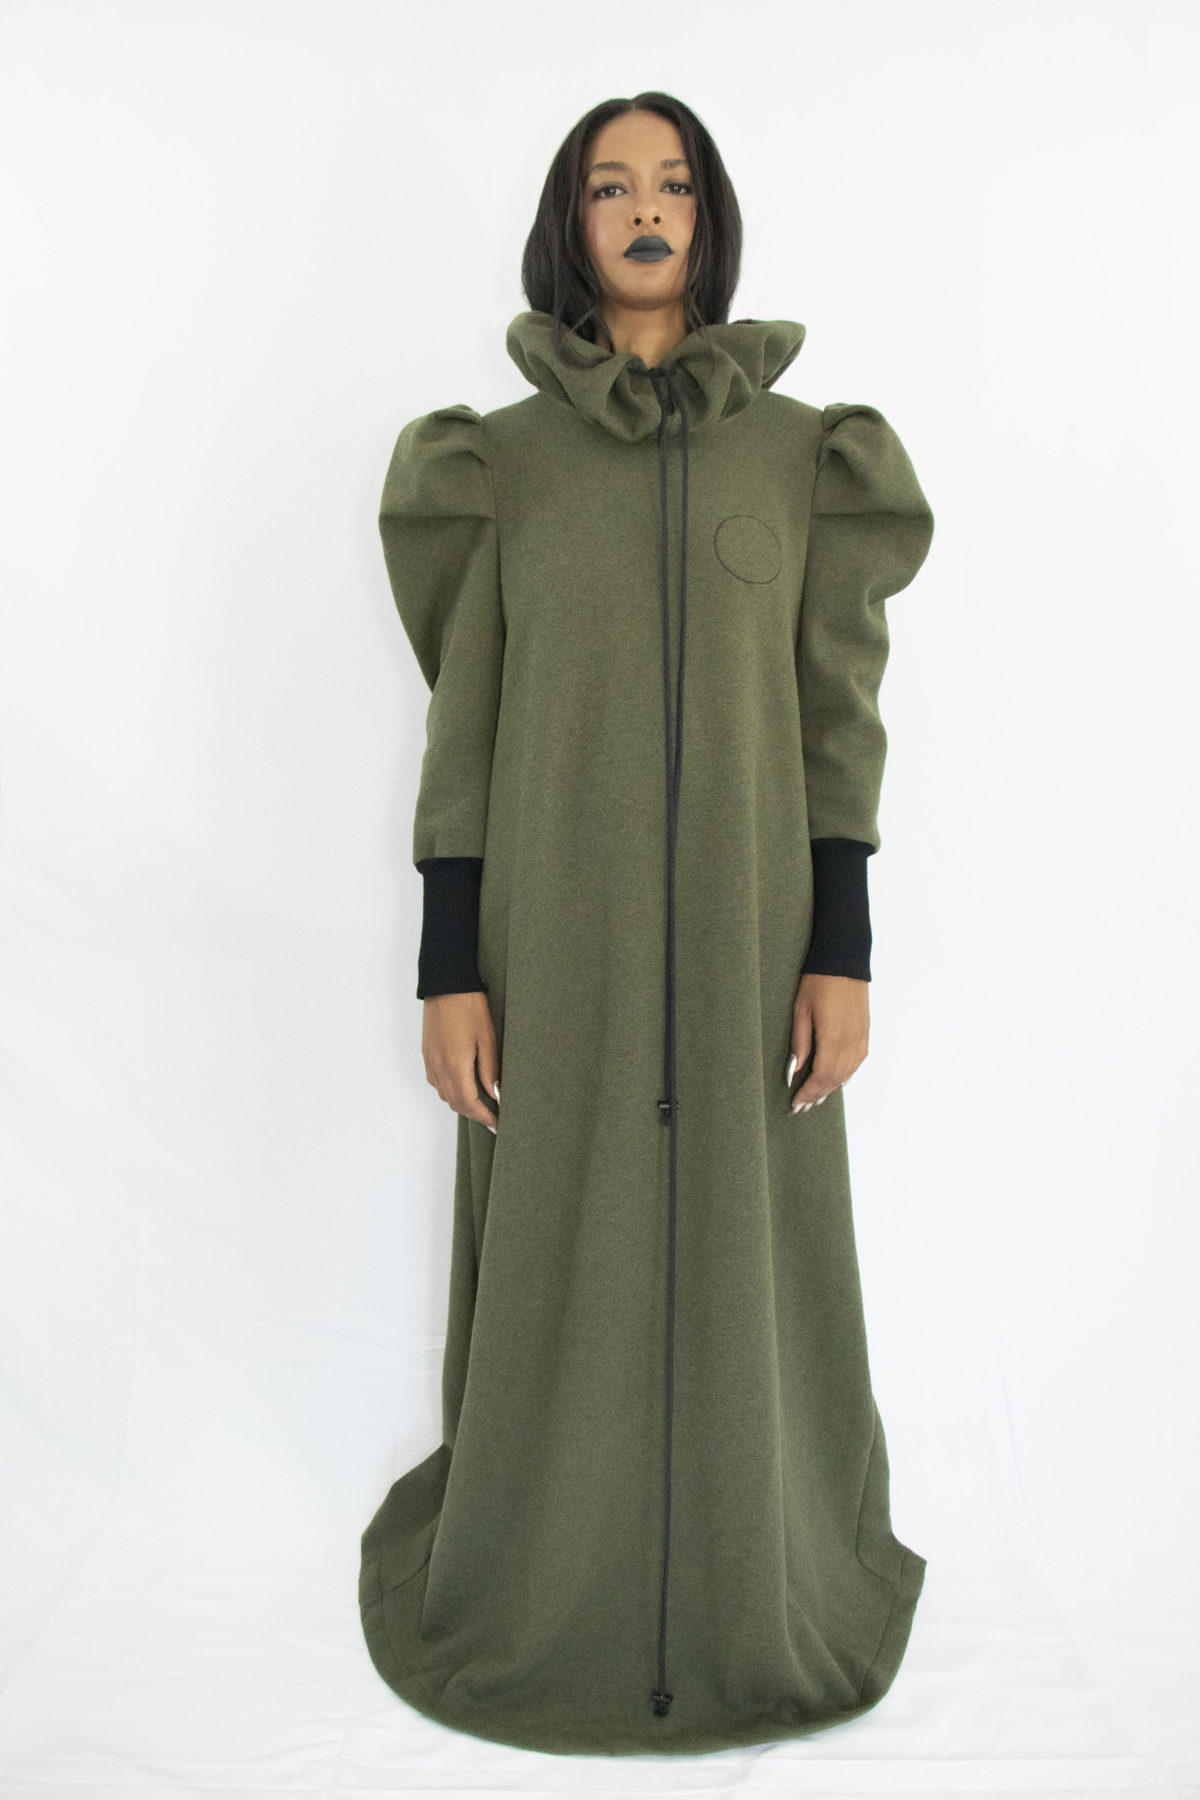 Woman wearing long forest green dress in organic cotton with gathered ruff collar and draw strings, puffy sleeves and long rib cuffs